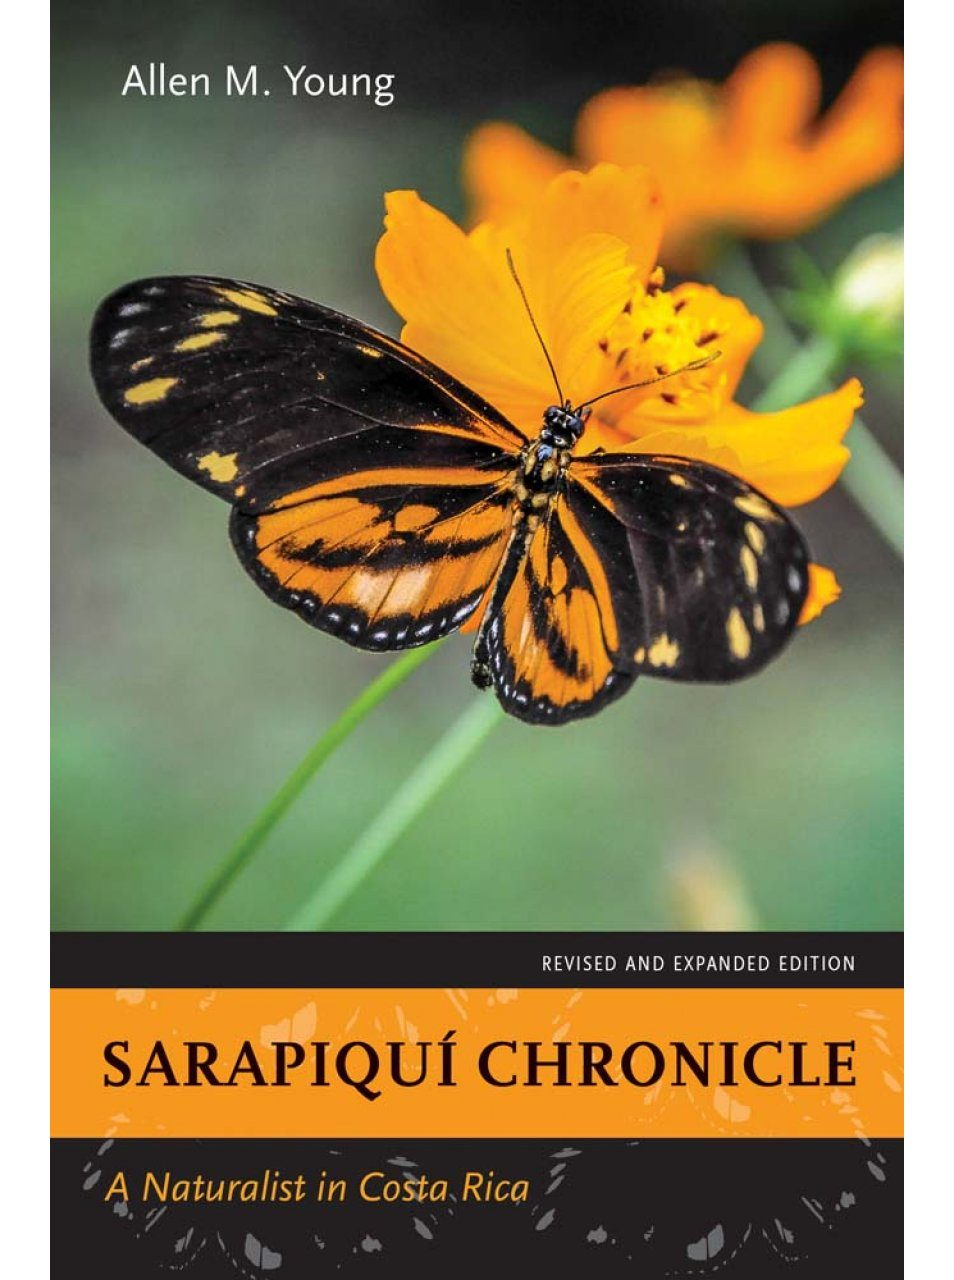 Sarapiquí Chronicle